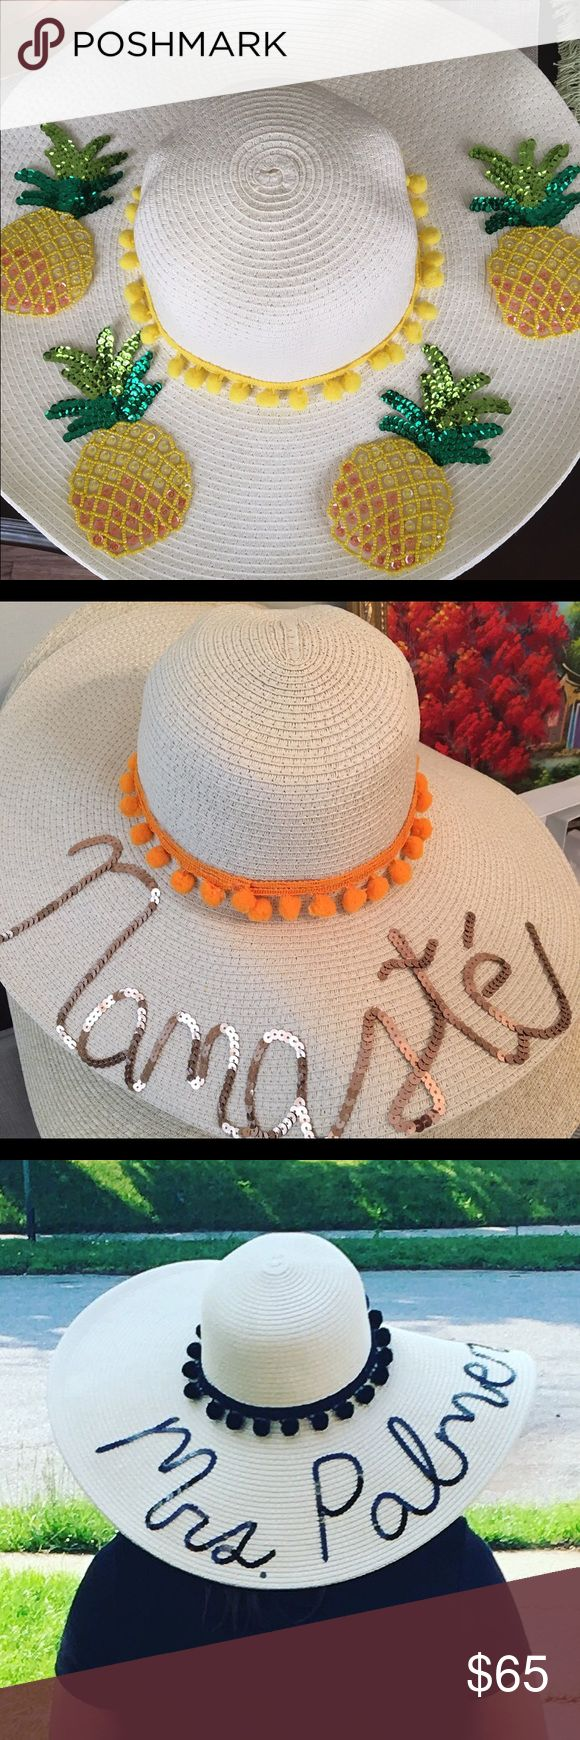 Glam Hats by Martha Glam Hats are floppy sun hats with Pom Pom & sequin. One size fits most. Made for sun protection & a little Glam under the sun Accessories Hats